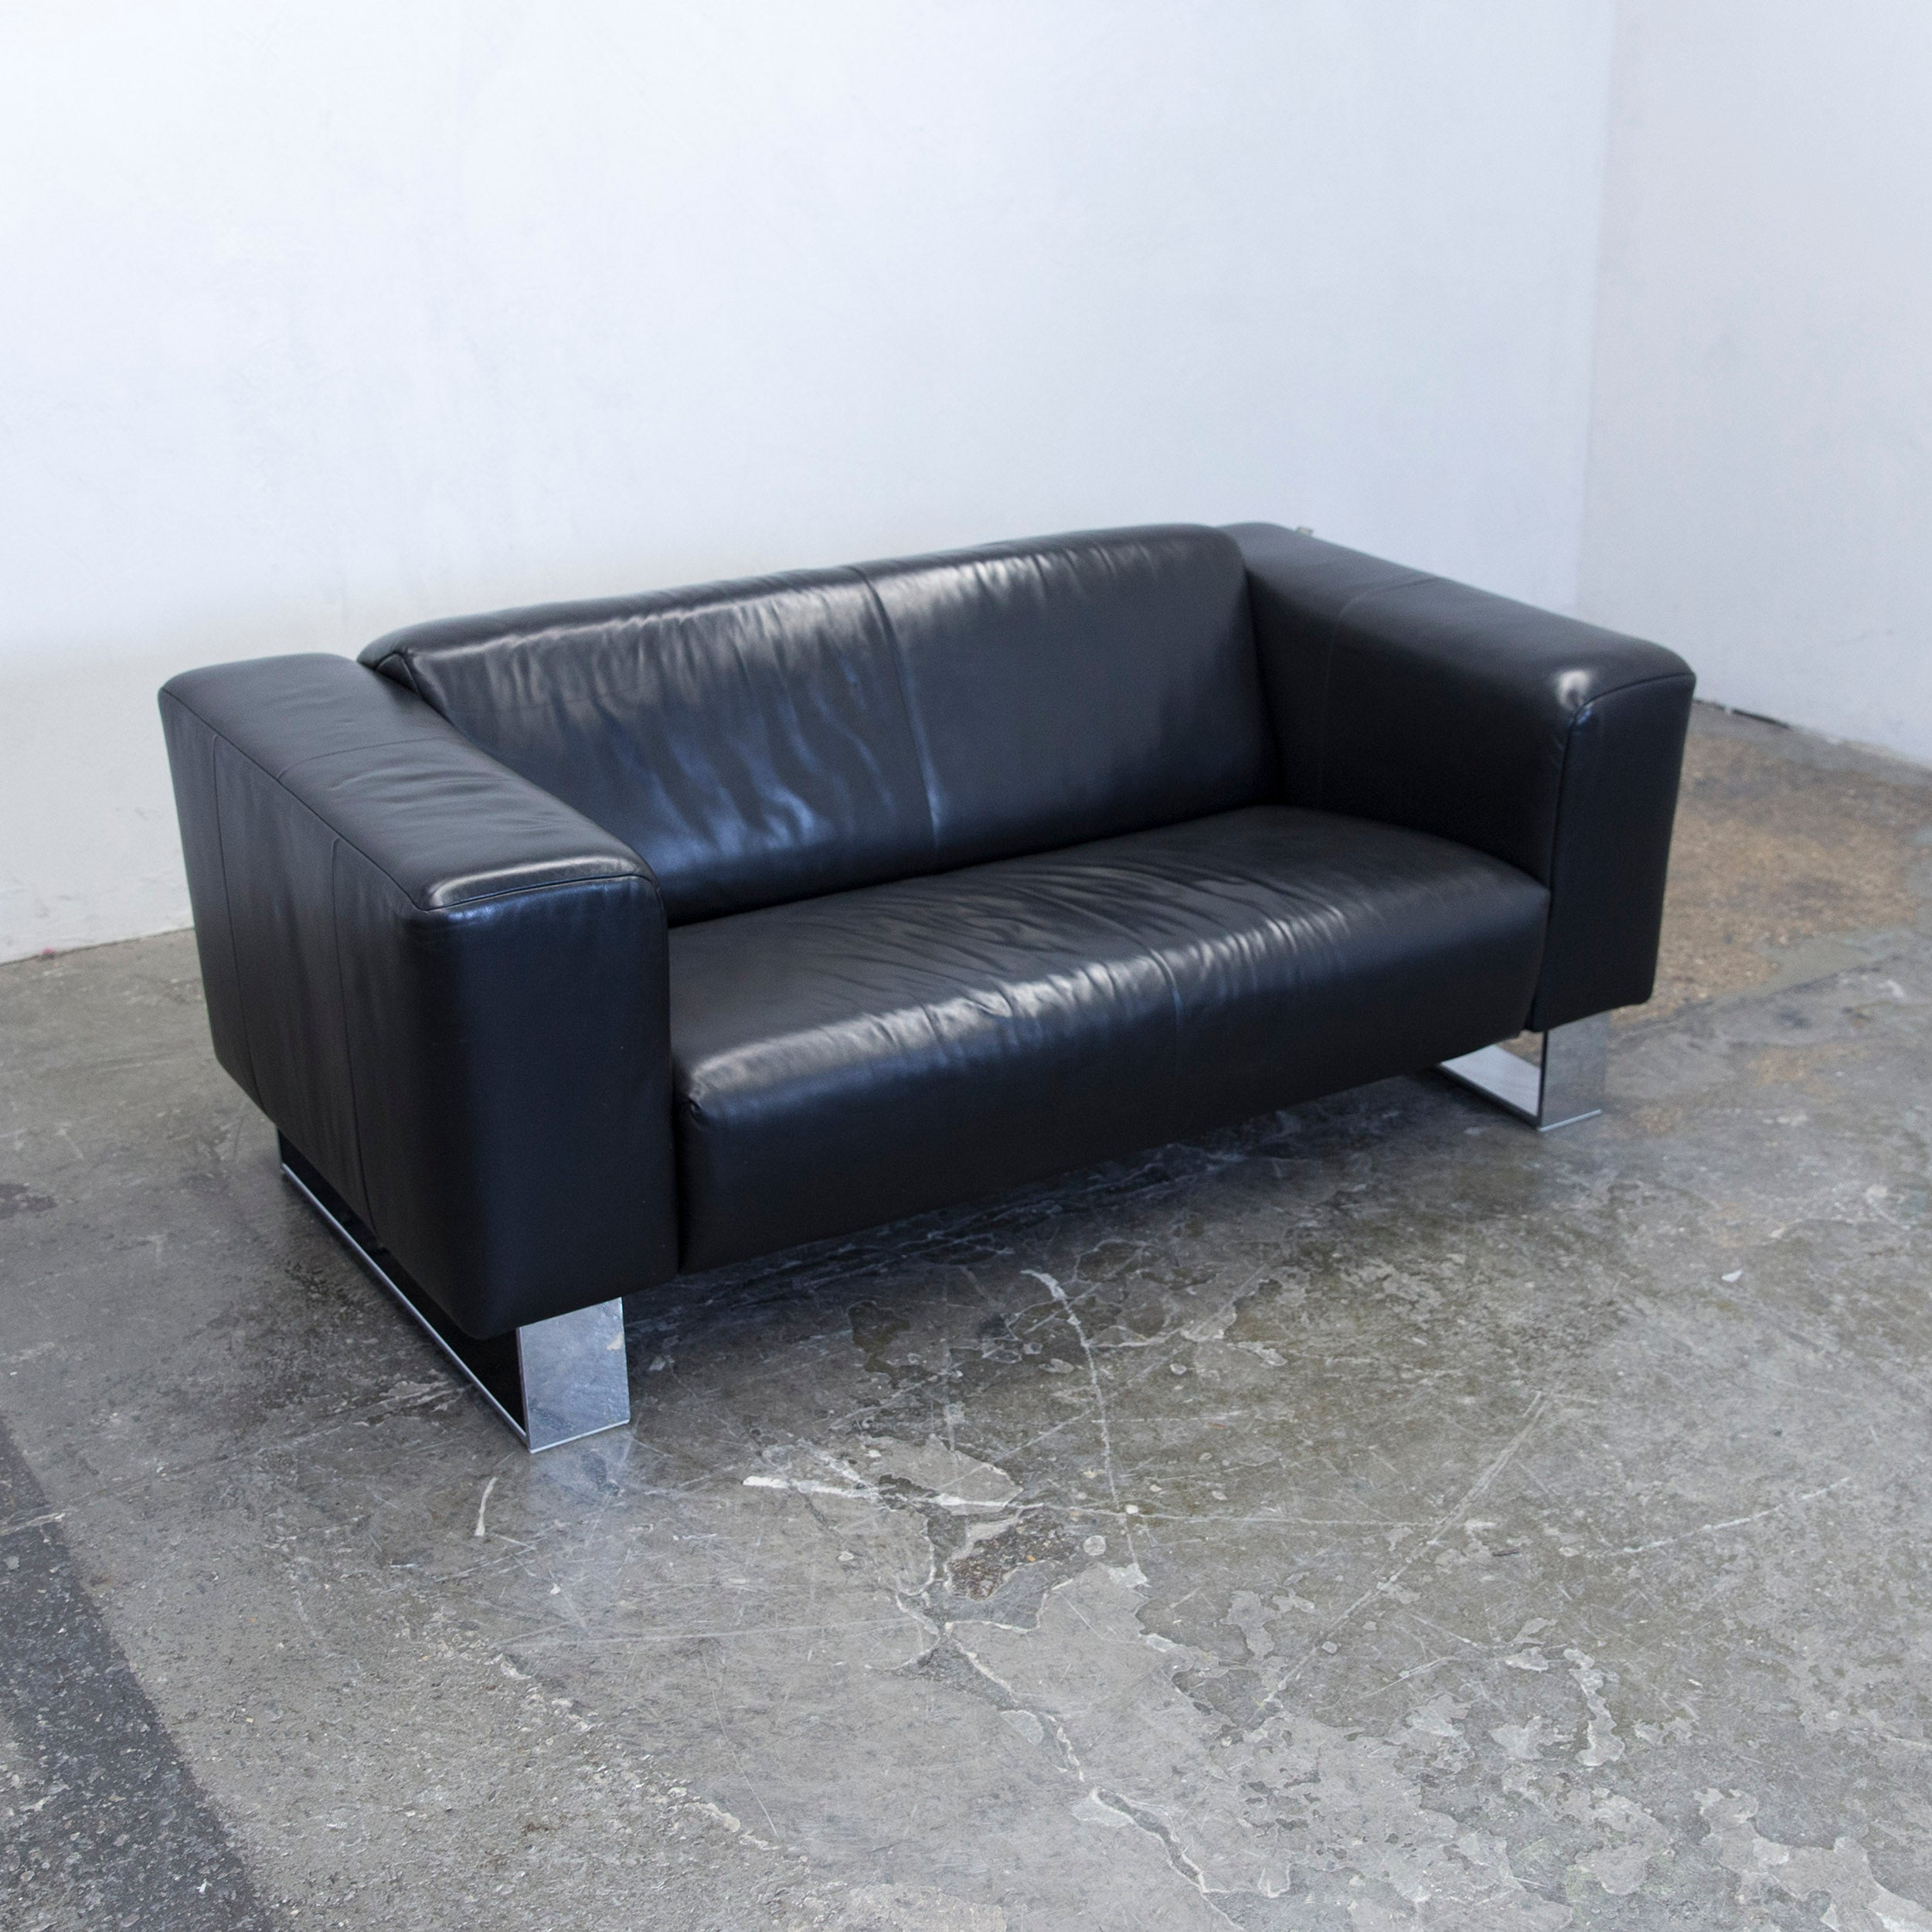 GroB Rolf Benz Bmp Designer Sofa Leather Black Two Seat Couch Modern At 1stdibs